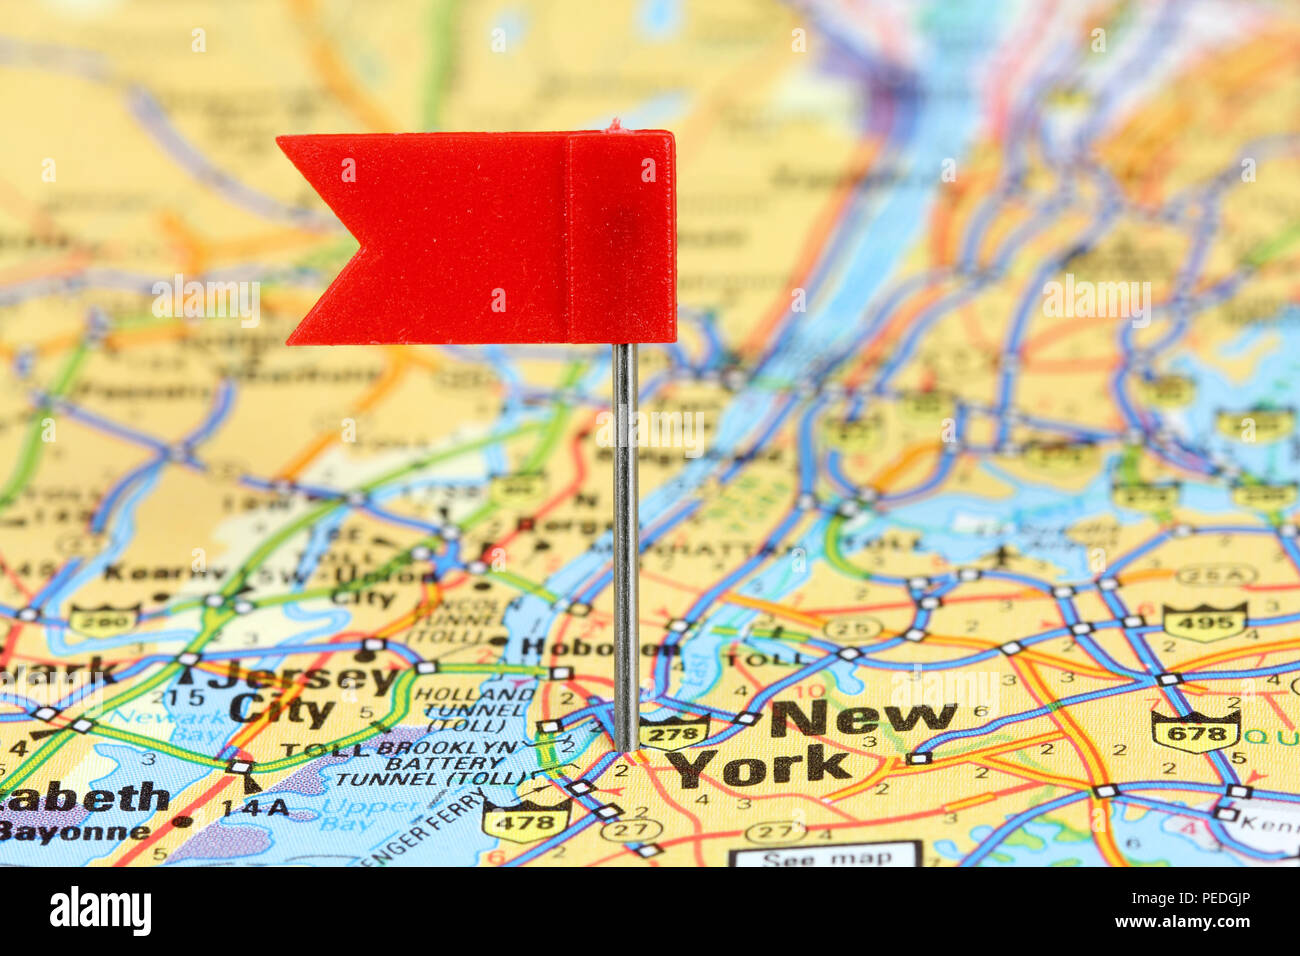 Map Of New York City For Tourists.New York City Red Flag Pin On An Old Map Showing Travel Destination